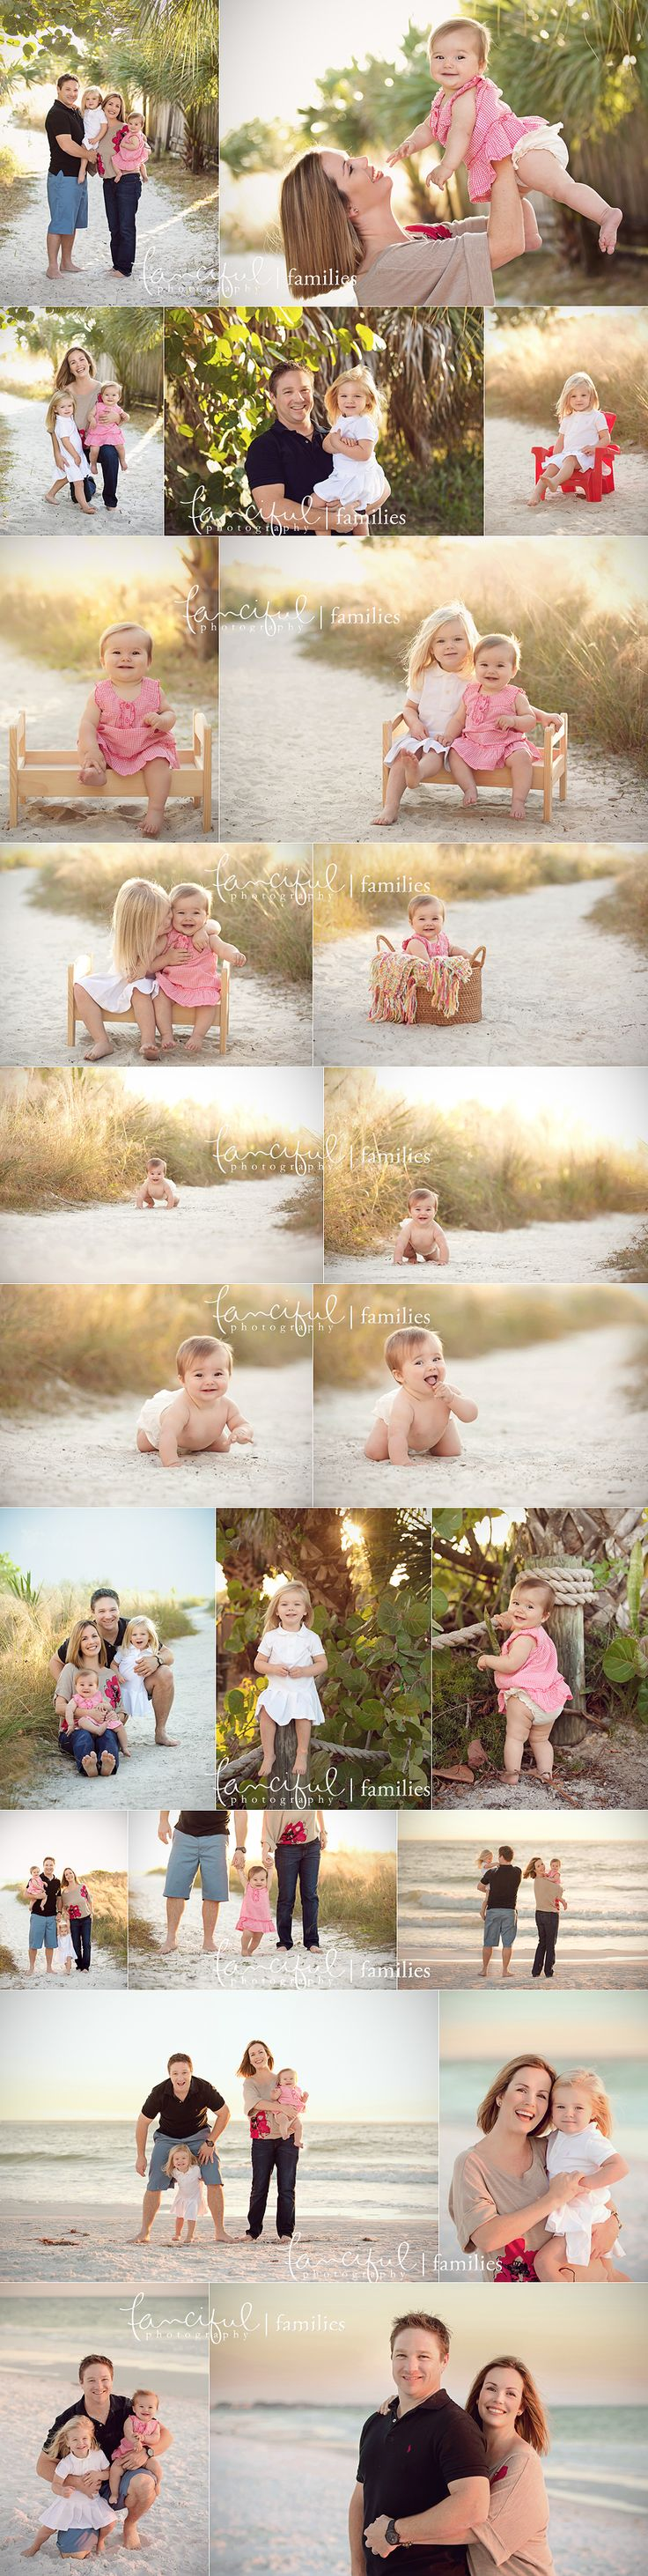 Family Beach Portraits fancifulphotograp...